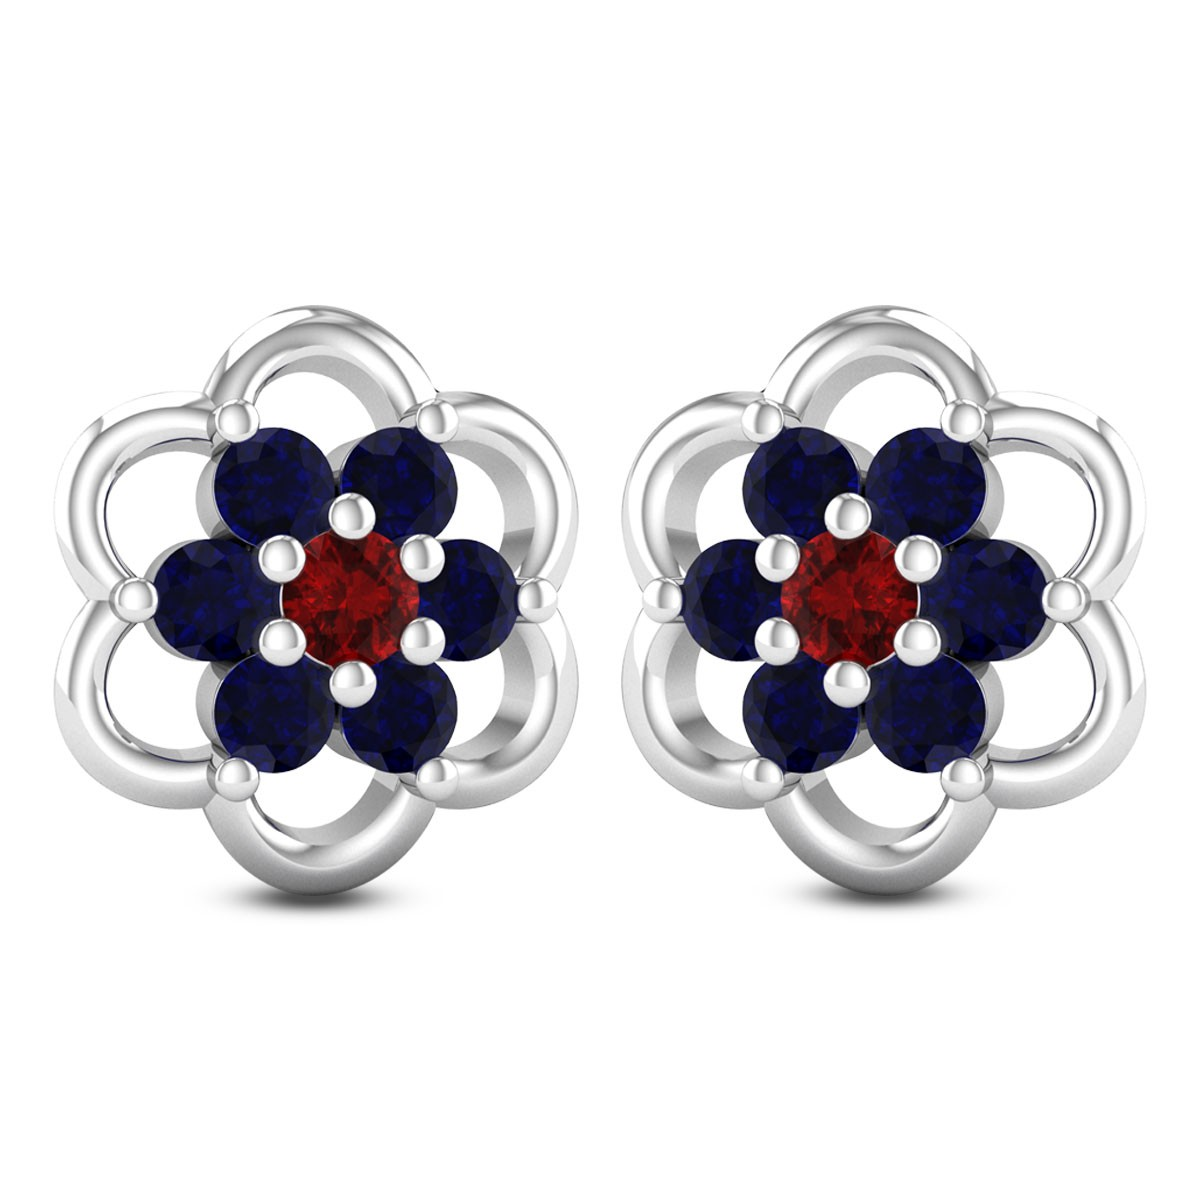 Blooming Sapphire Stud Earrings